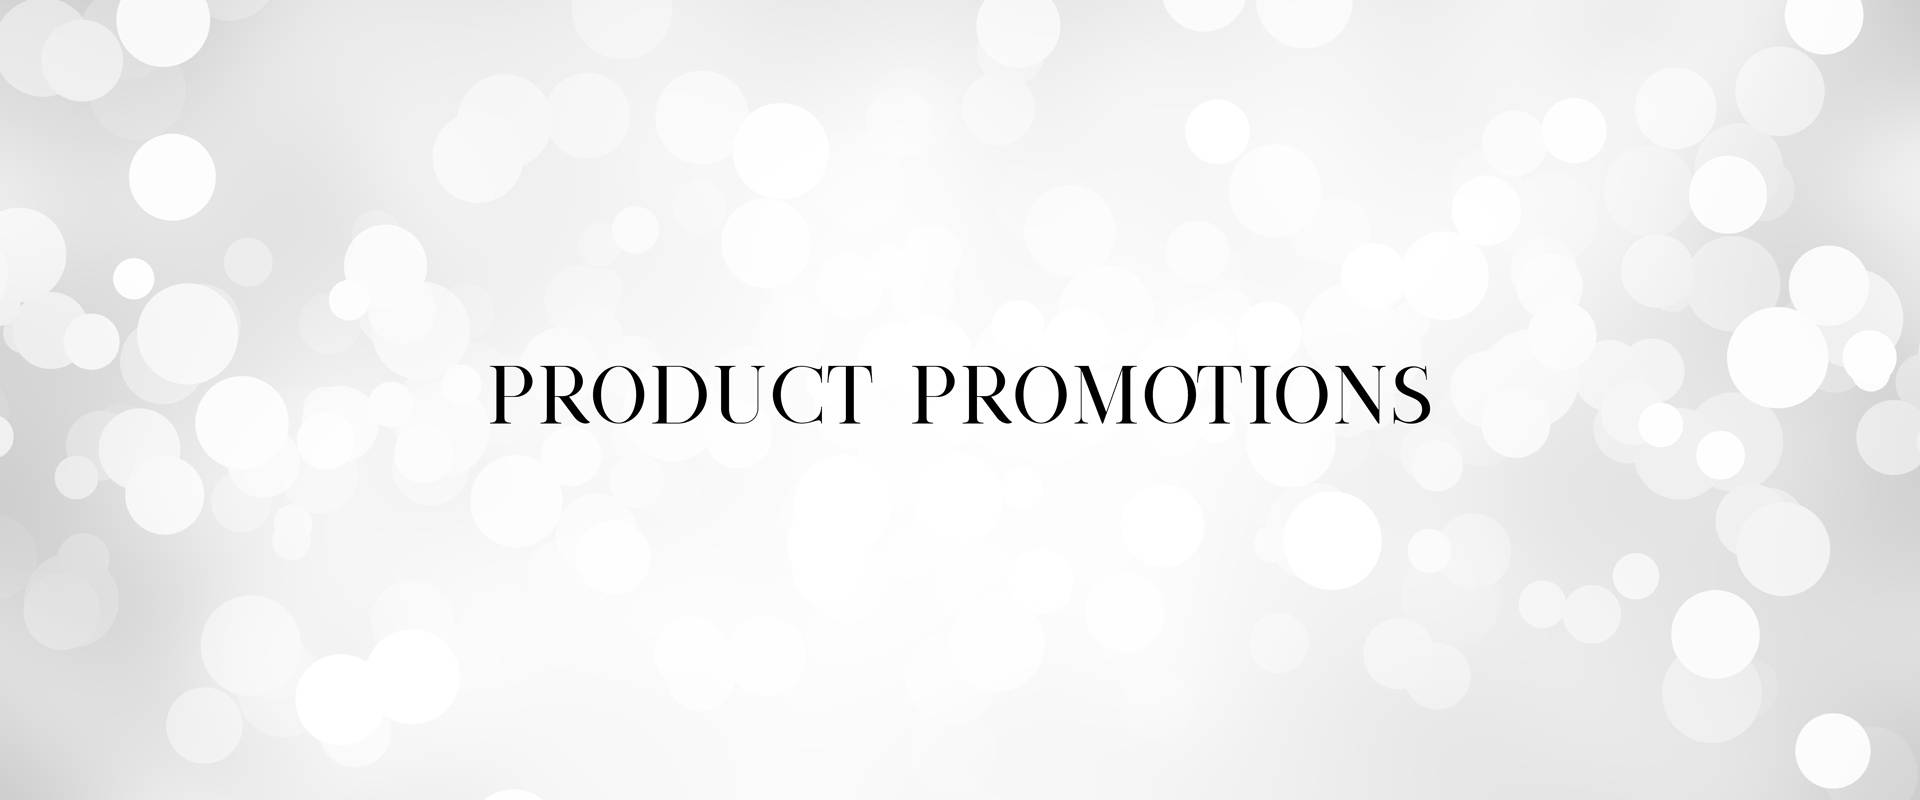 skinprint promotions, product promotions